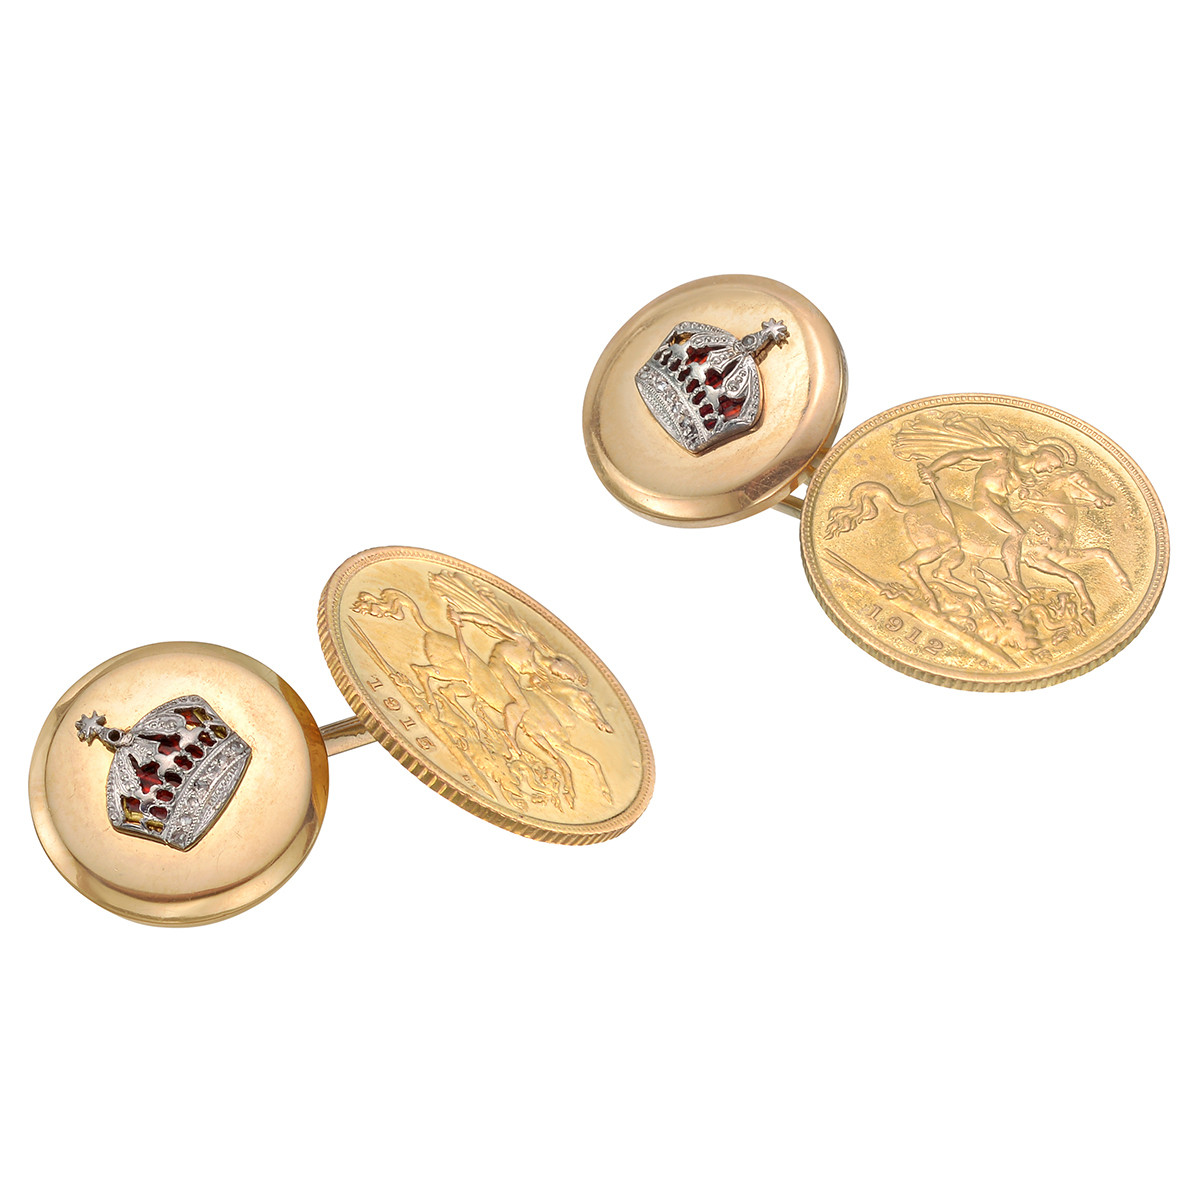 Gold Sovereign Coin & Crown Links